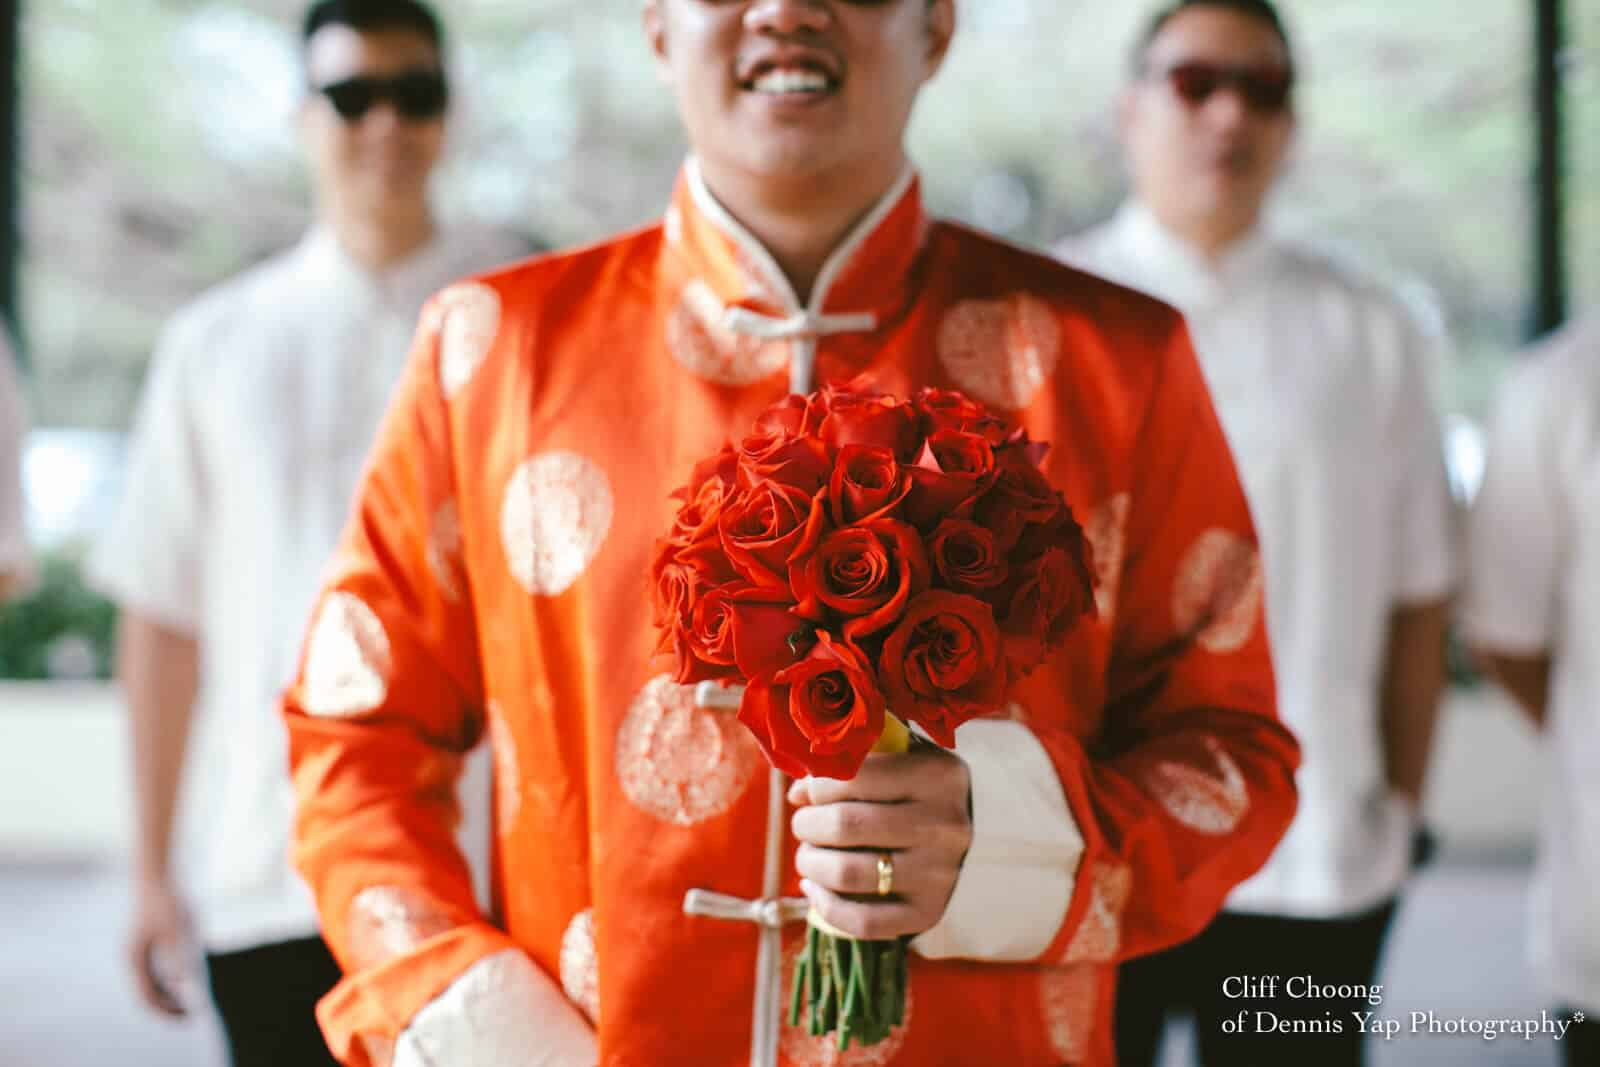 Wedding Day in Kota Kinabalu Sabah Malaysia Shangri-La Tanjung Aru Resort and Spa Cliff Choong Photography groom